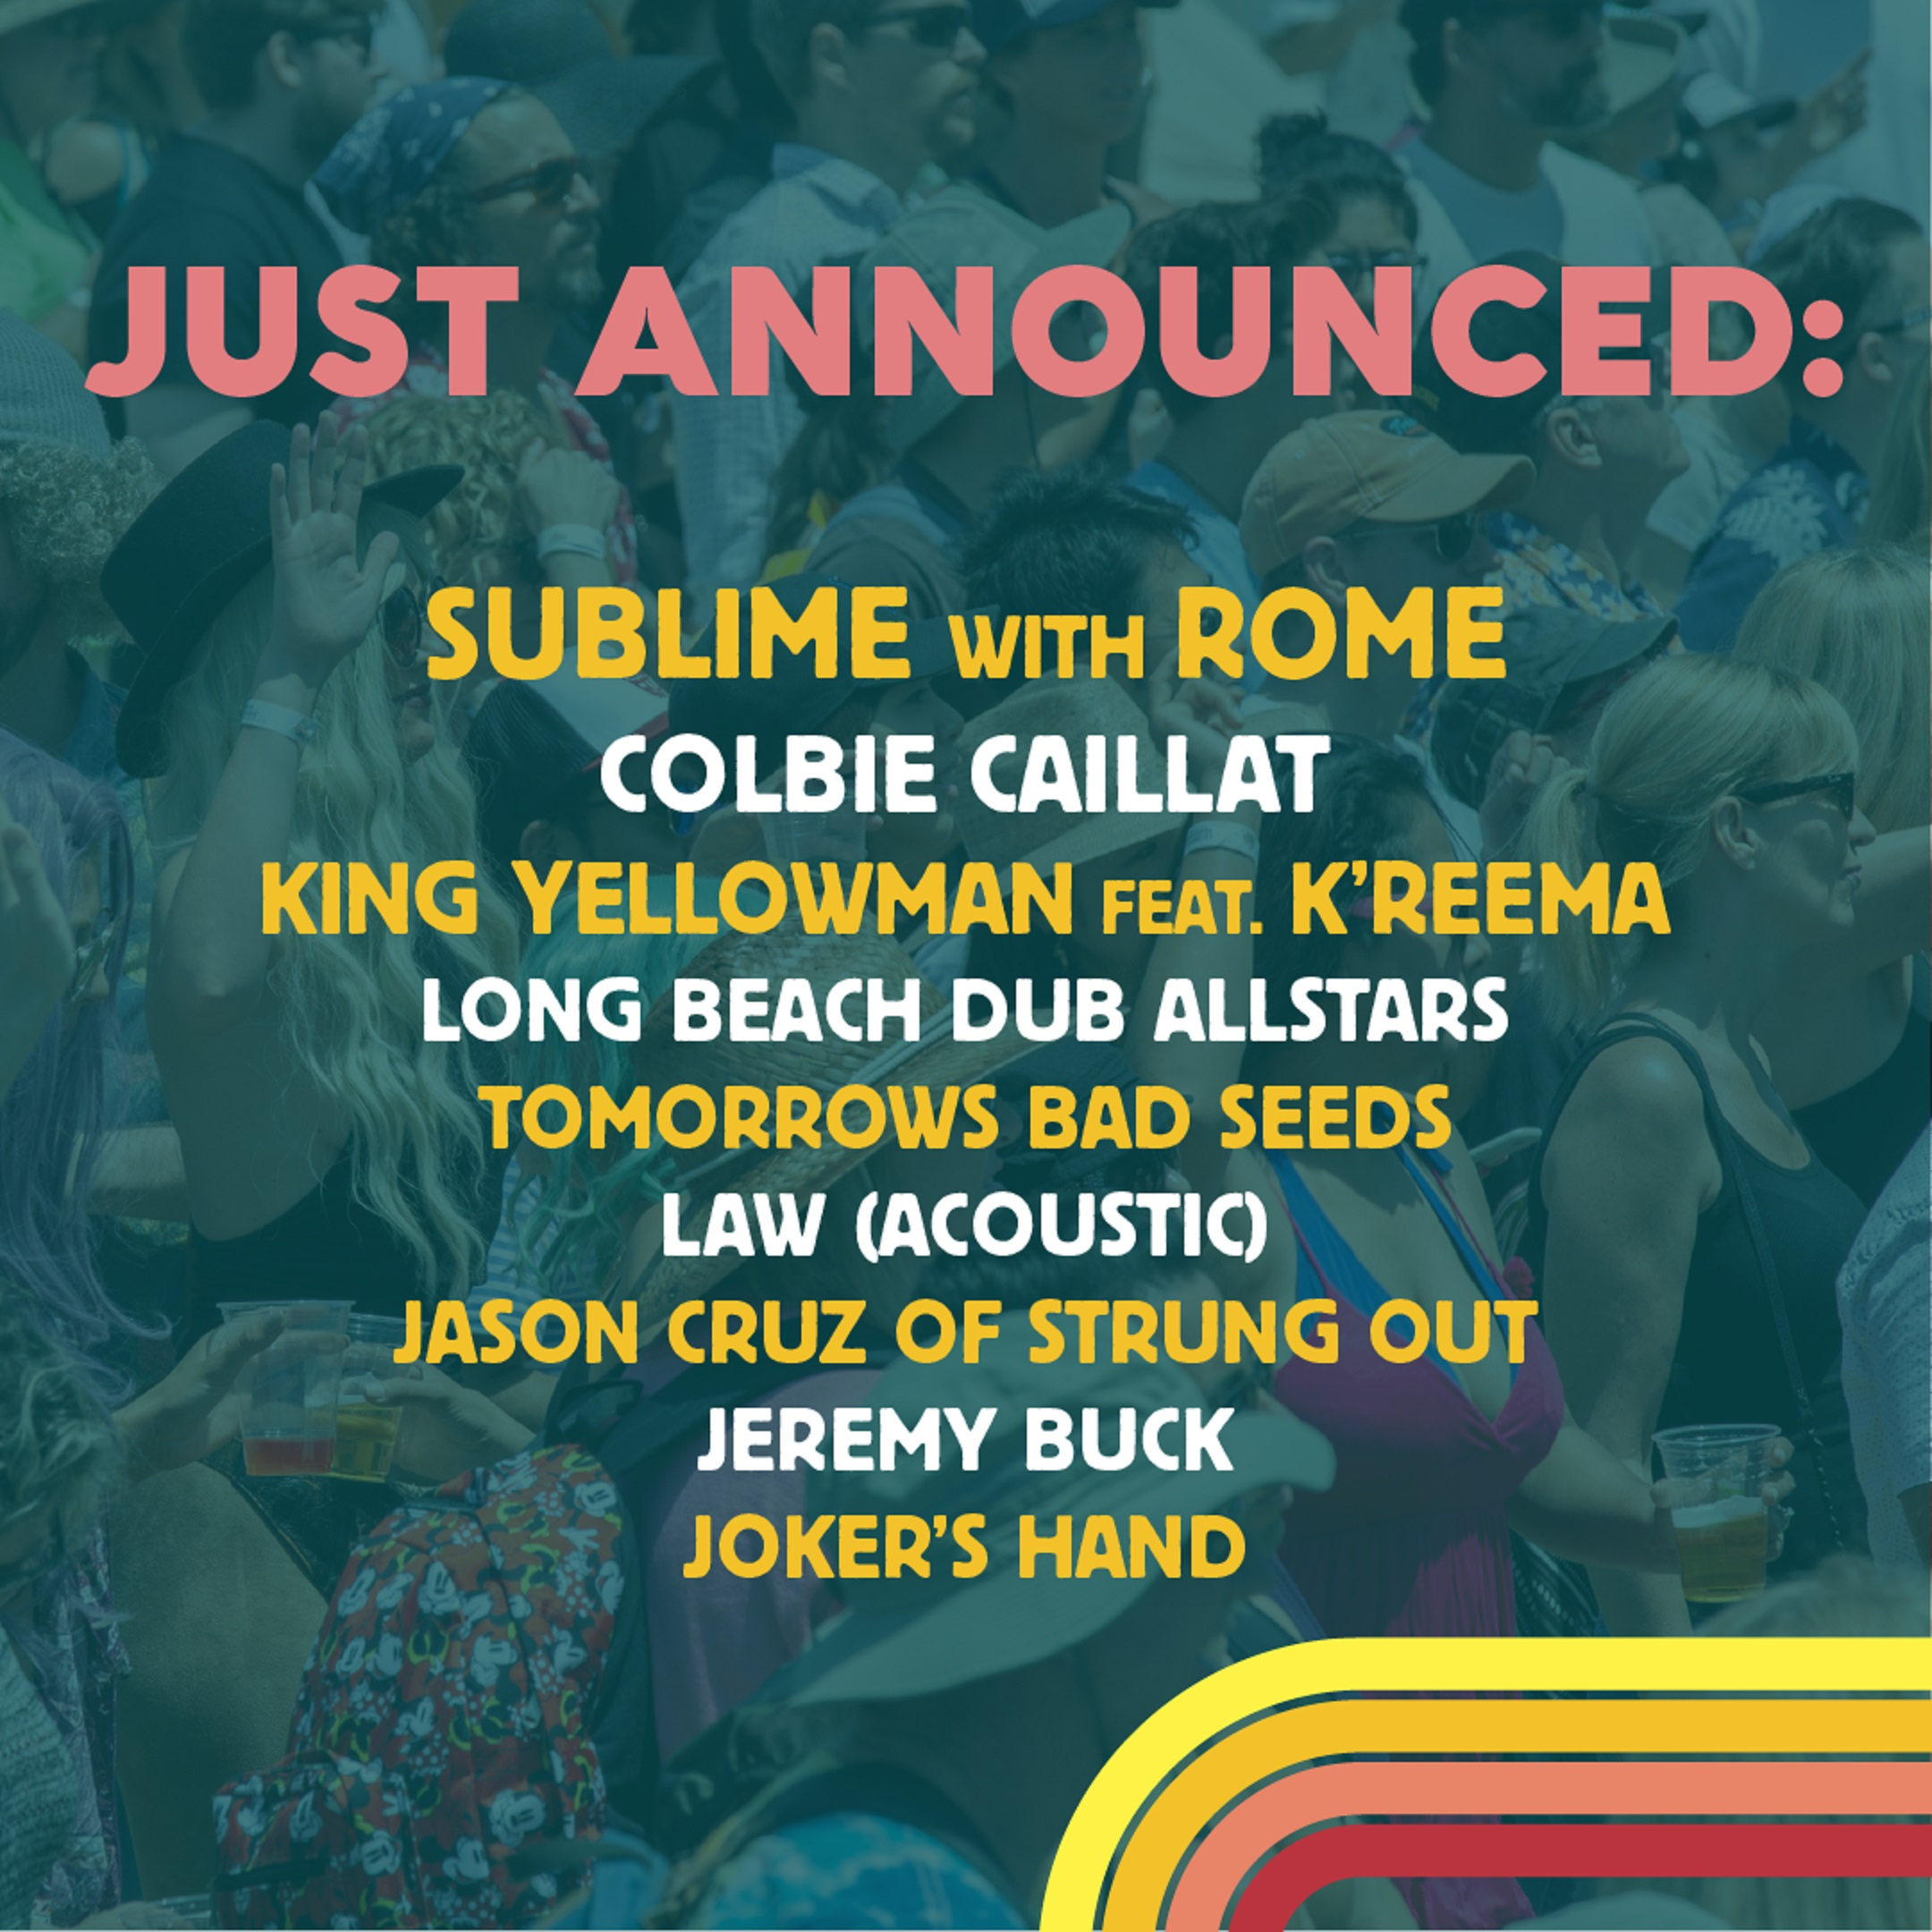 The BeachLife Festival Reveals Lineup Additions: SUBLIME WITH ROME, COLBIE CAILLAT, and more